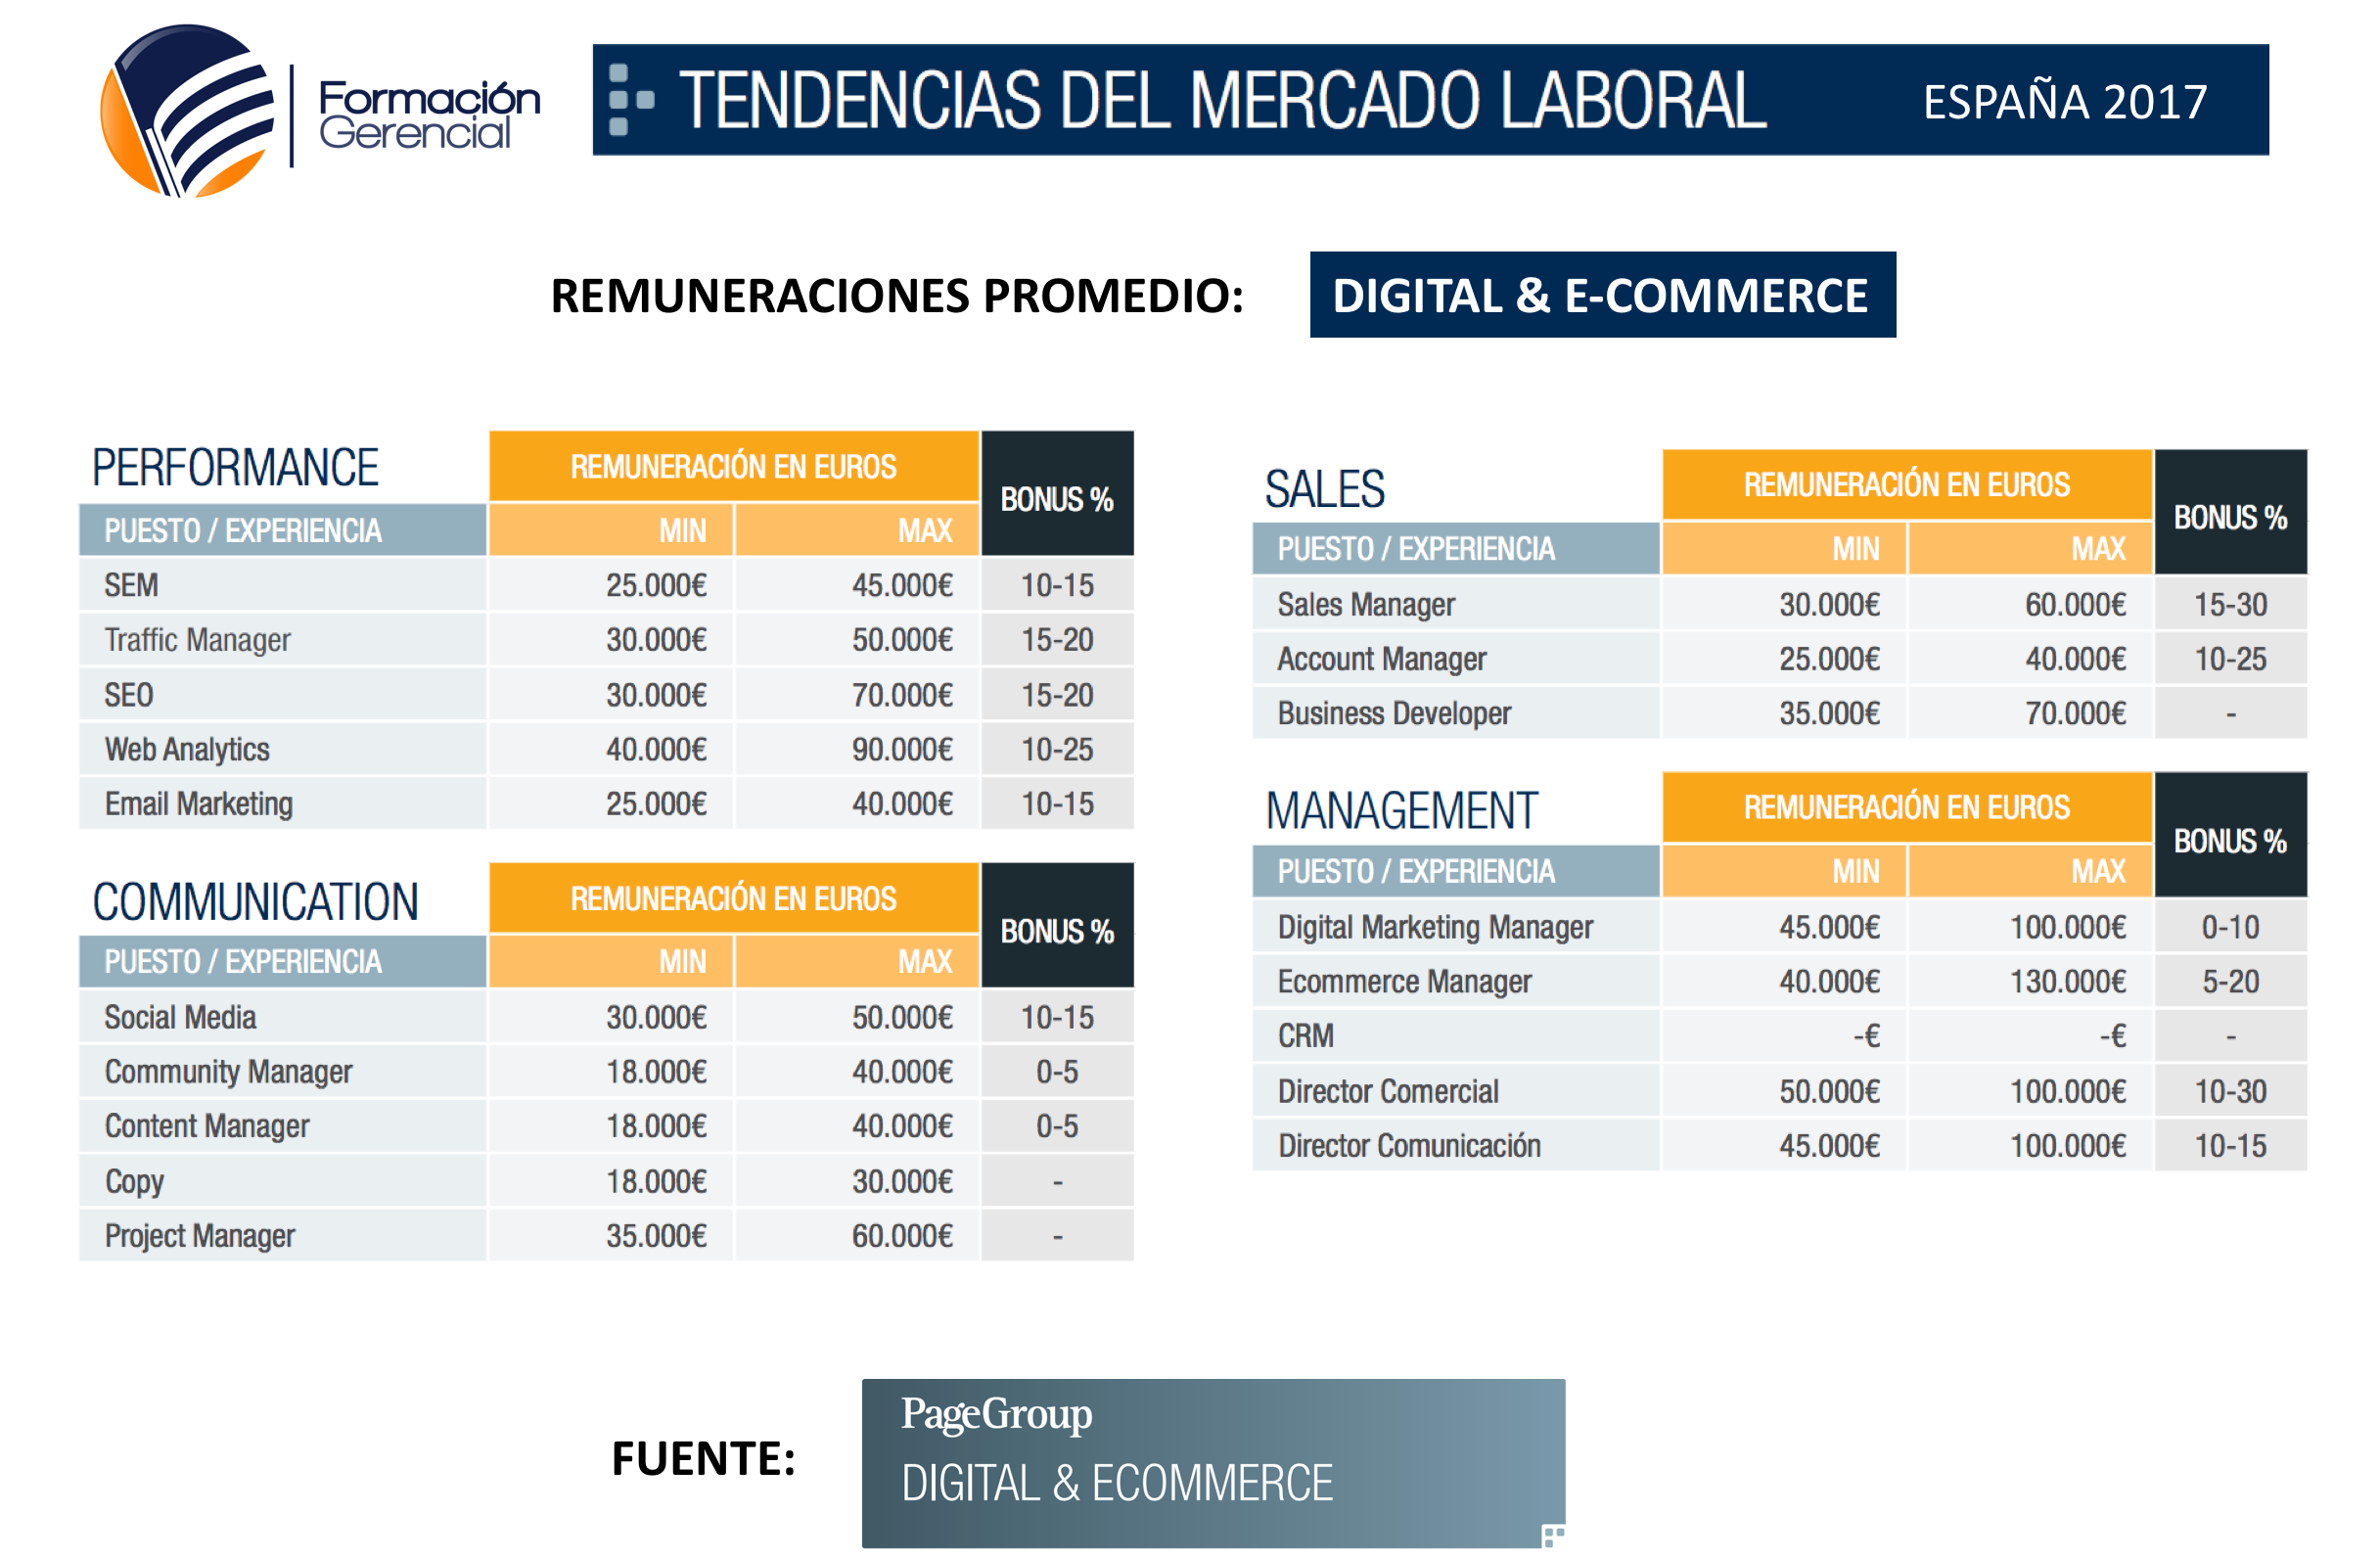 Tendencias Mercado Laboral Gestión Digital Marketing Digital Ecommerce 2017 - Habilidades y profesiones más solicitadas